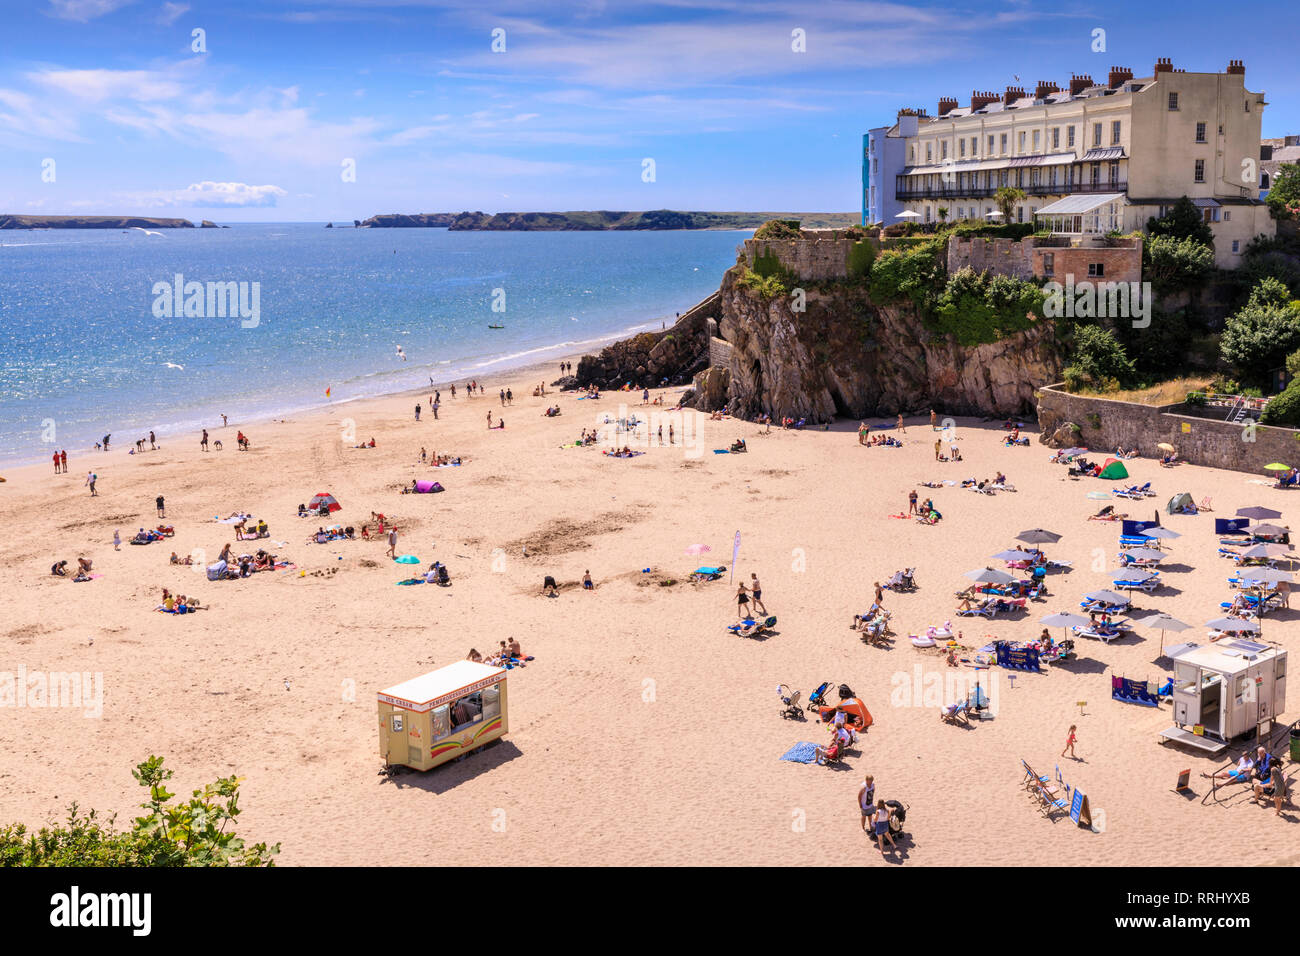 Castle Beach, historic houses above the cliffs, sunbathers on a sunny day in summer, Tenby, Pembrokeshire, Wales, United Kingdom, Europe - Stock Image